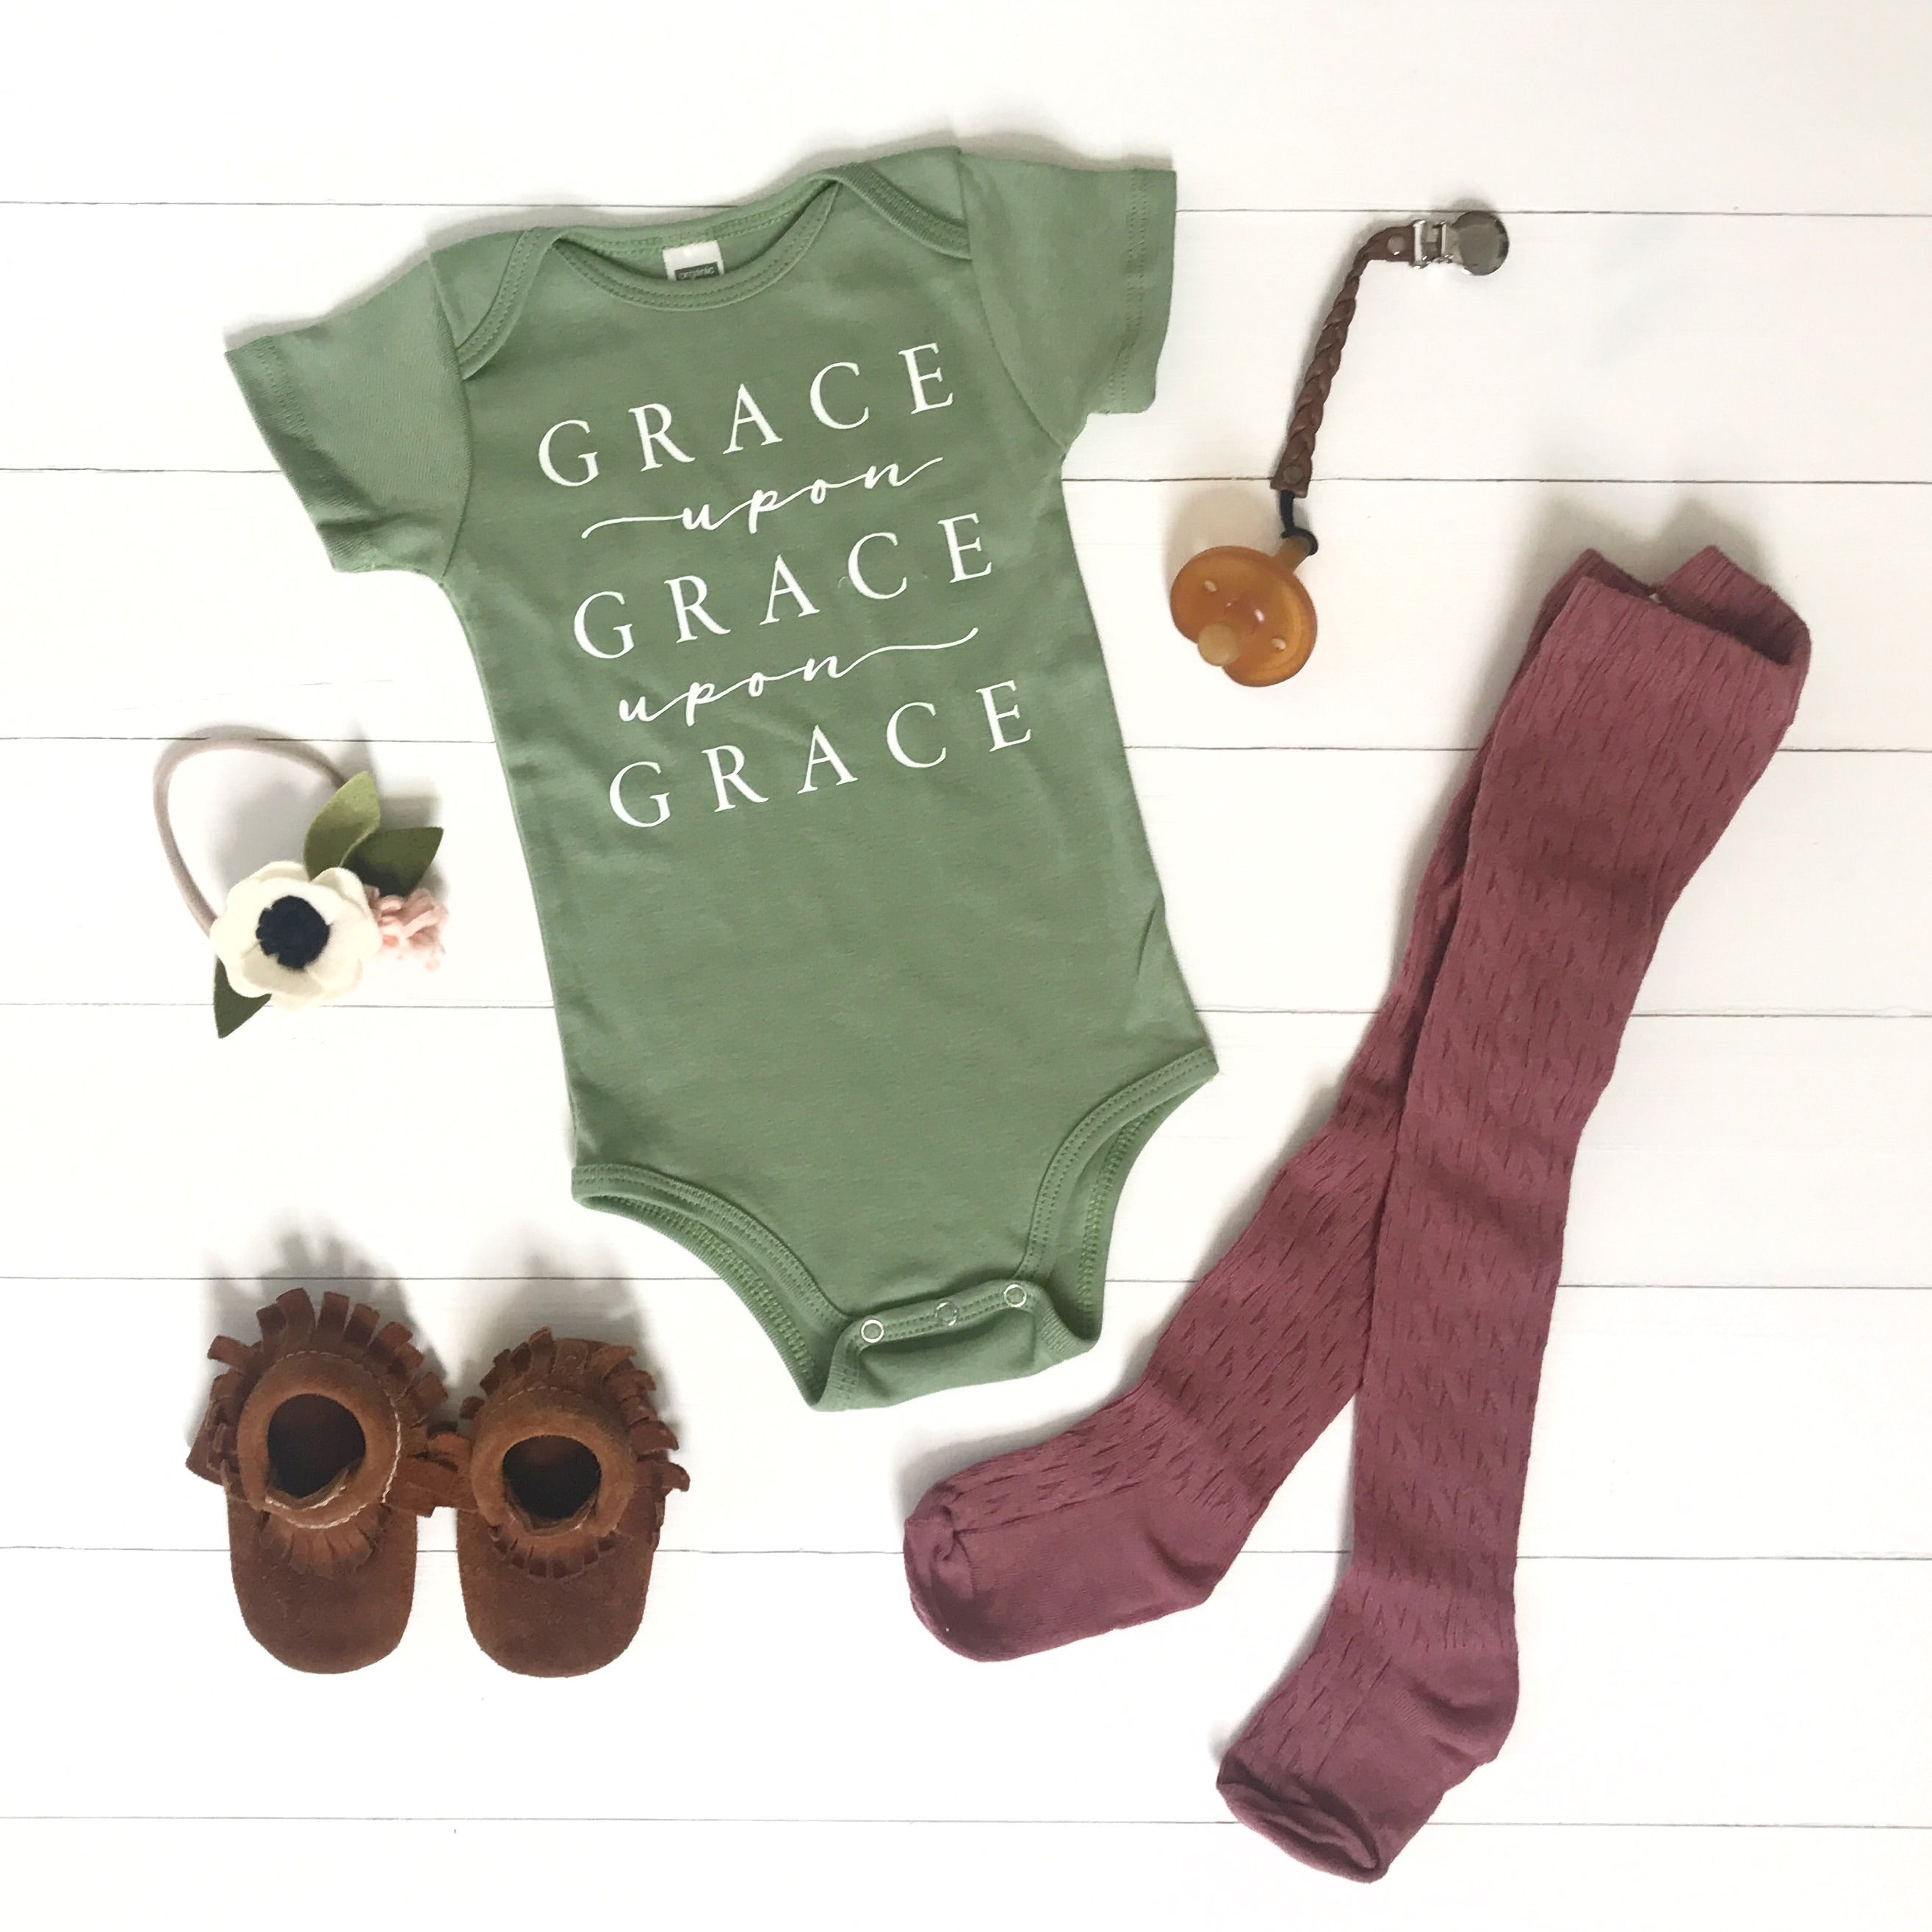 Grace Upon Grace Upon Grace Green Organic Onesie